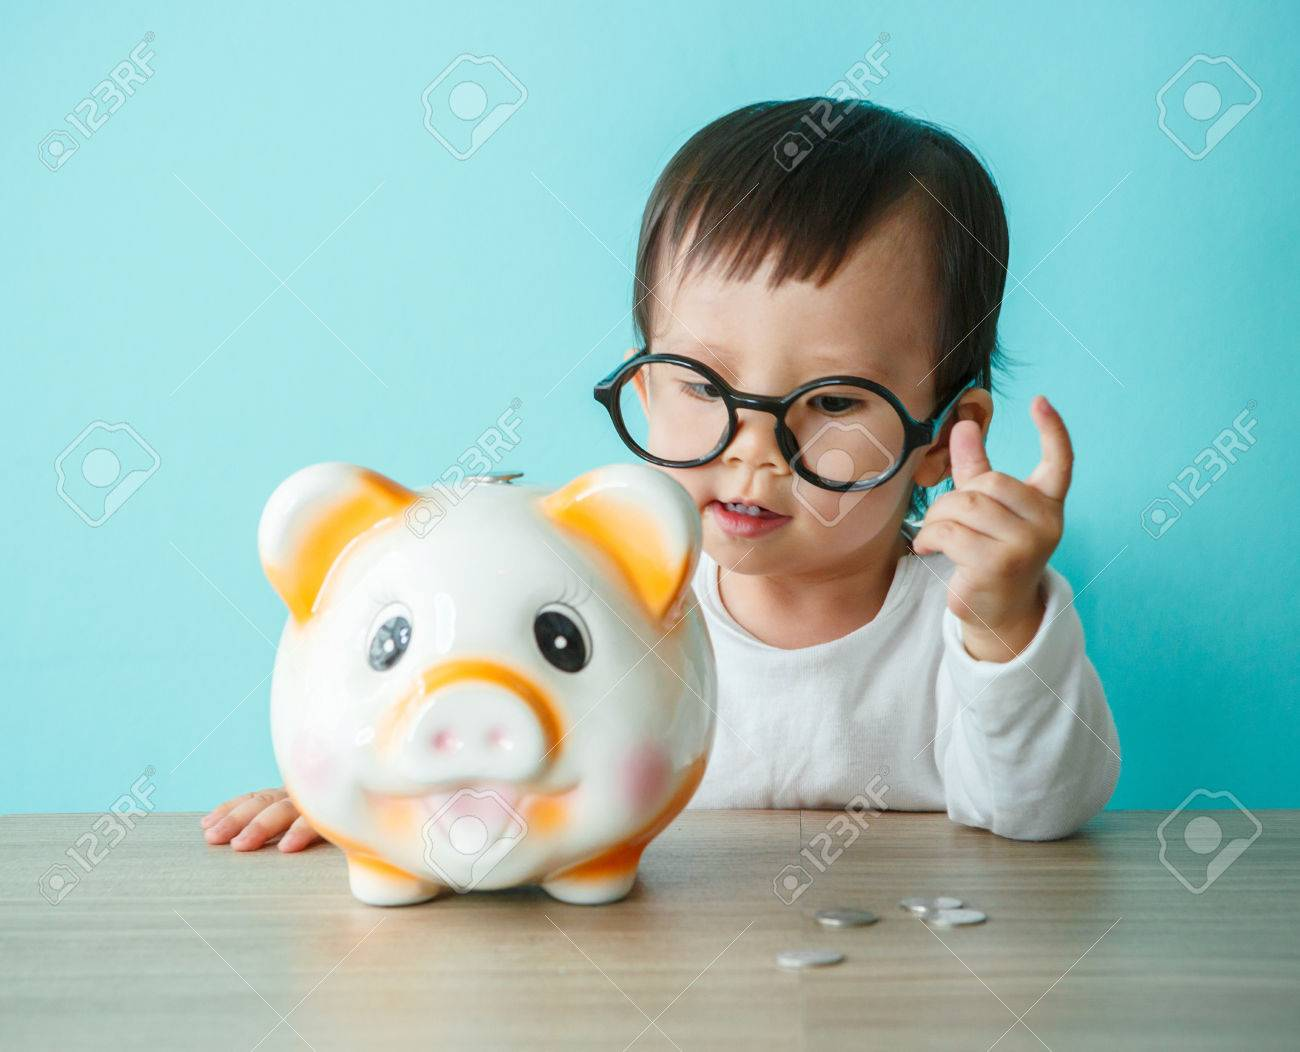 Little Baby Moneybox Putting A Coin Into A Piggy Bank Kid Saving Stock Photo Picture And Royalty Free Image Image 67430290